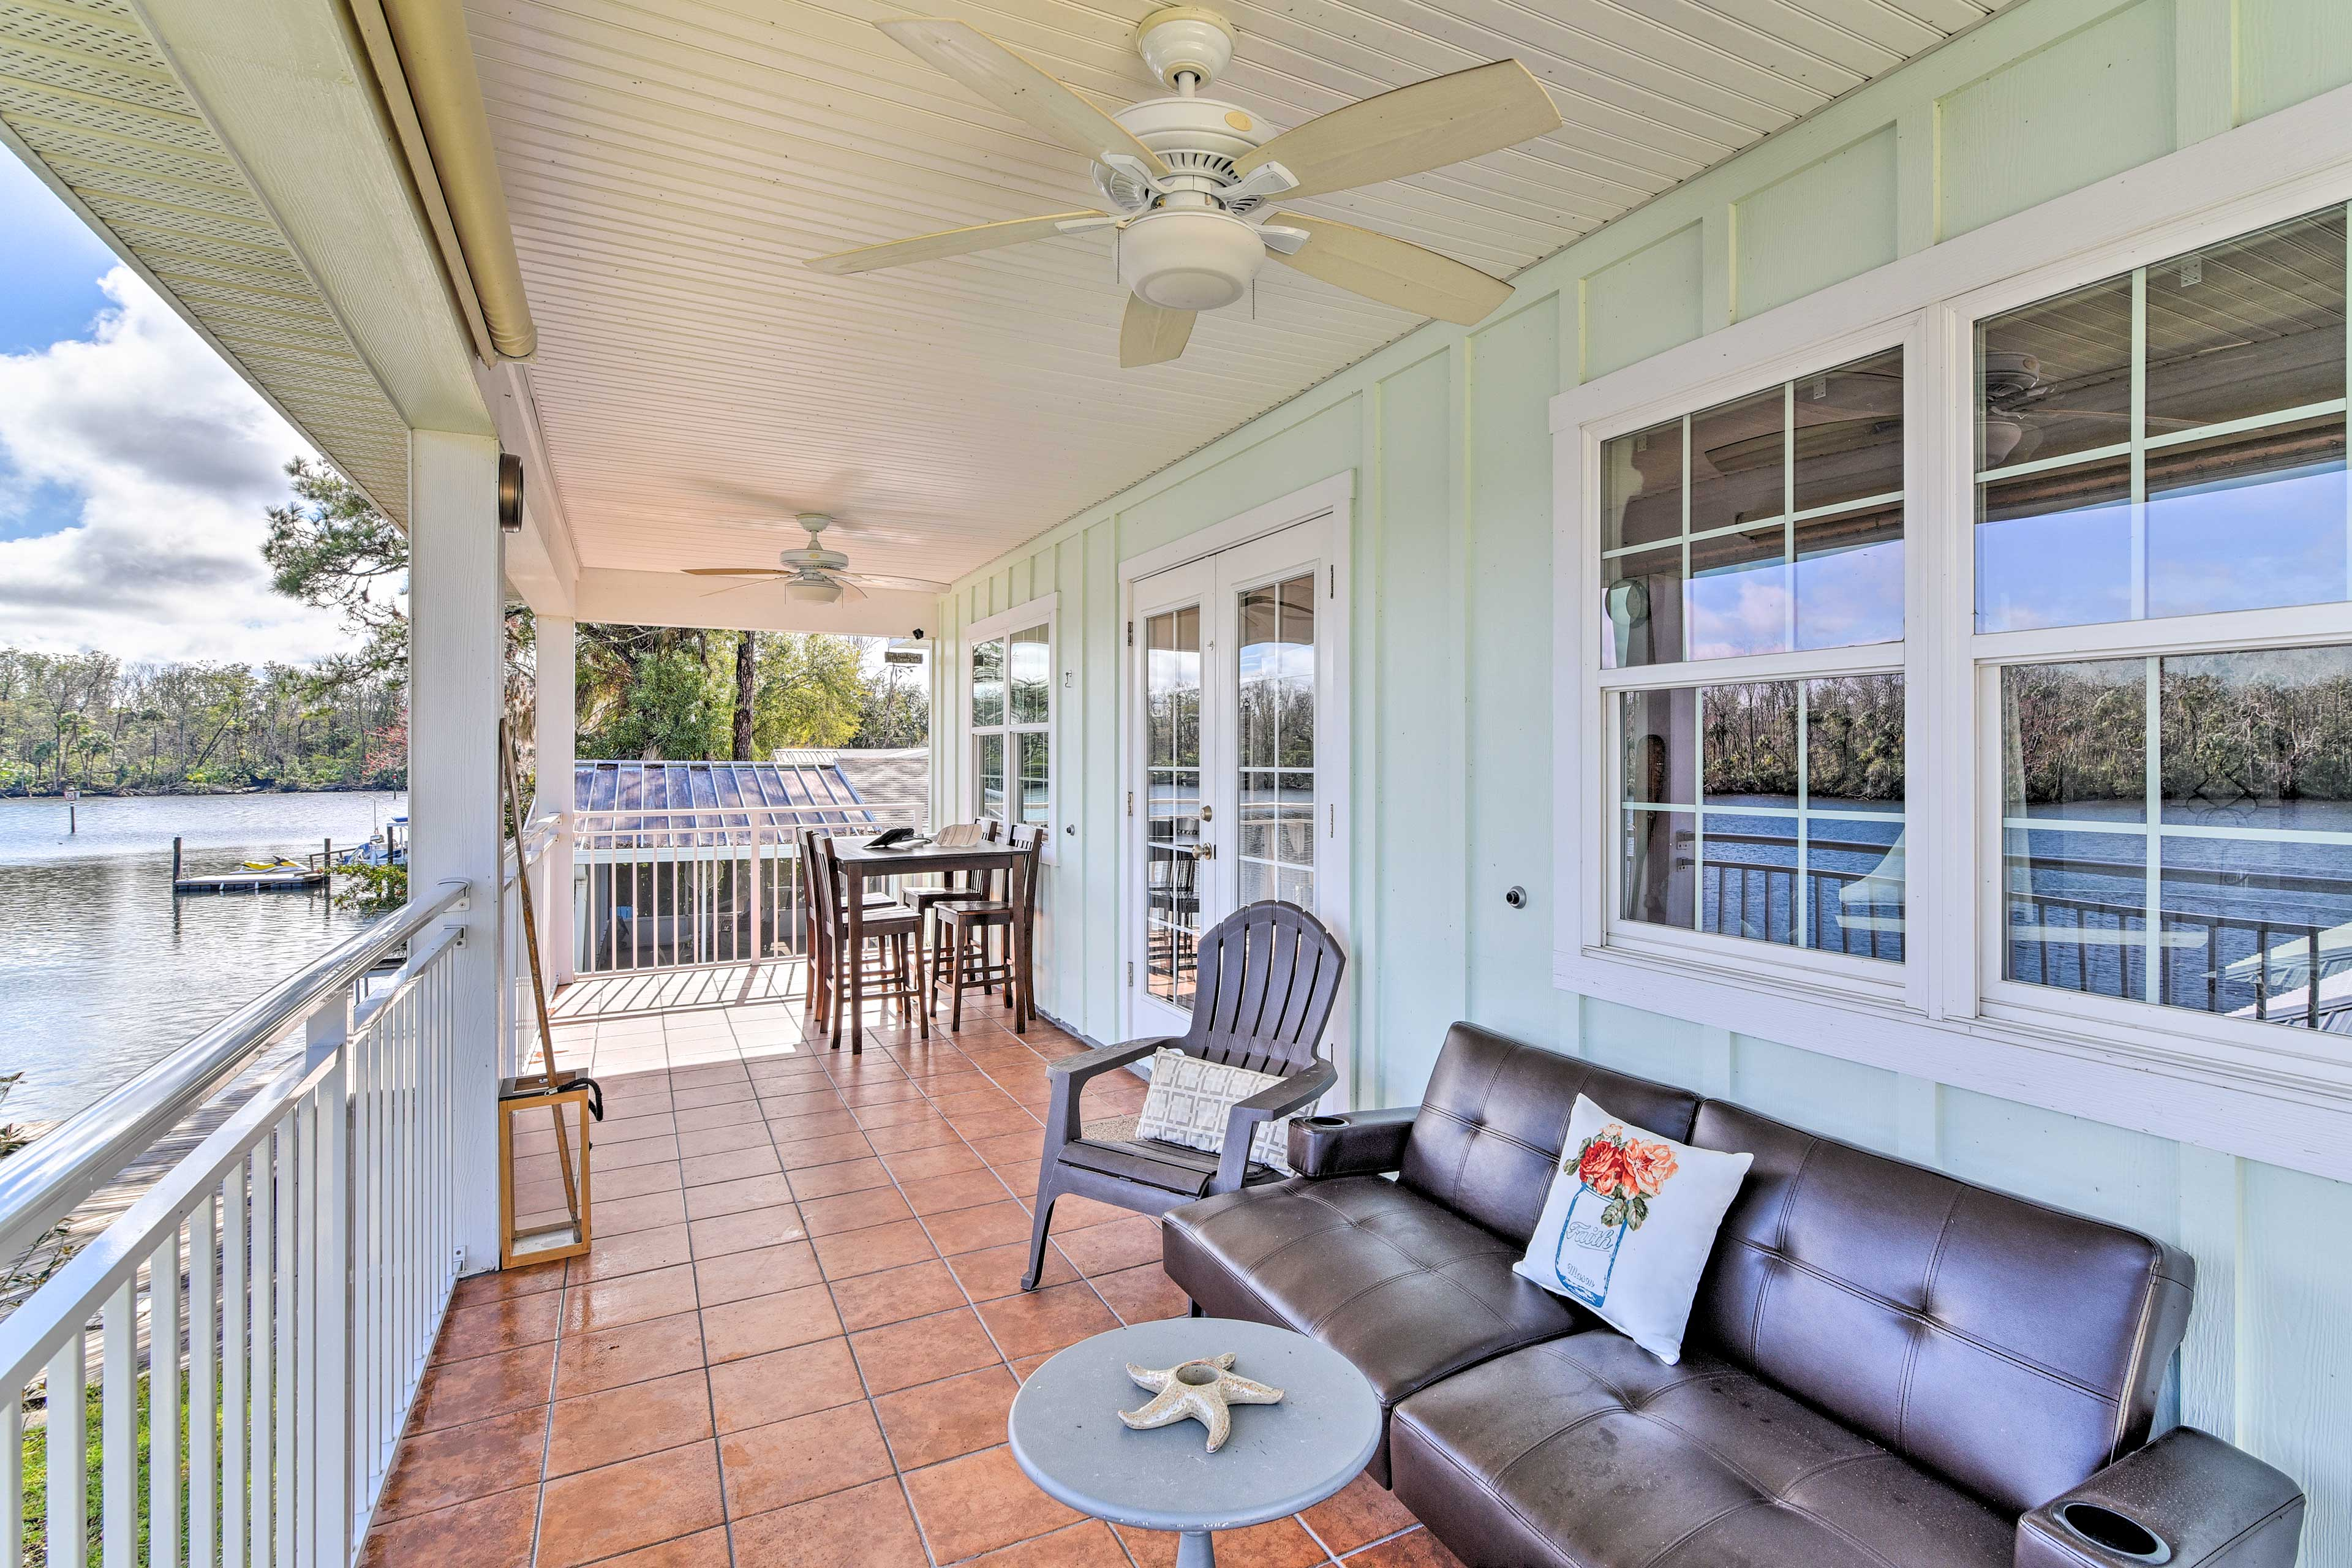 The covered porch has unparalleled views of the Homosassa River.